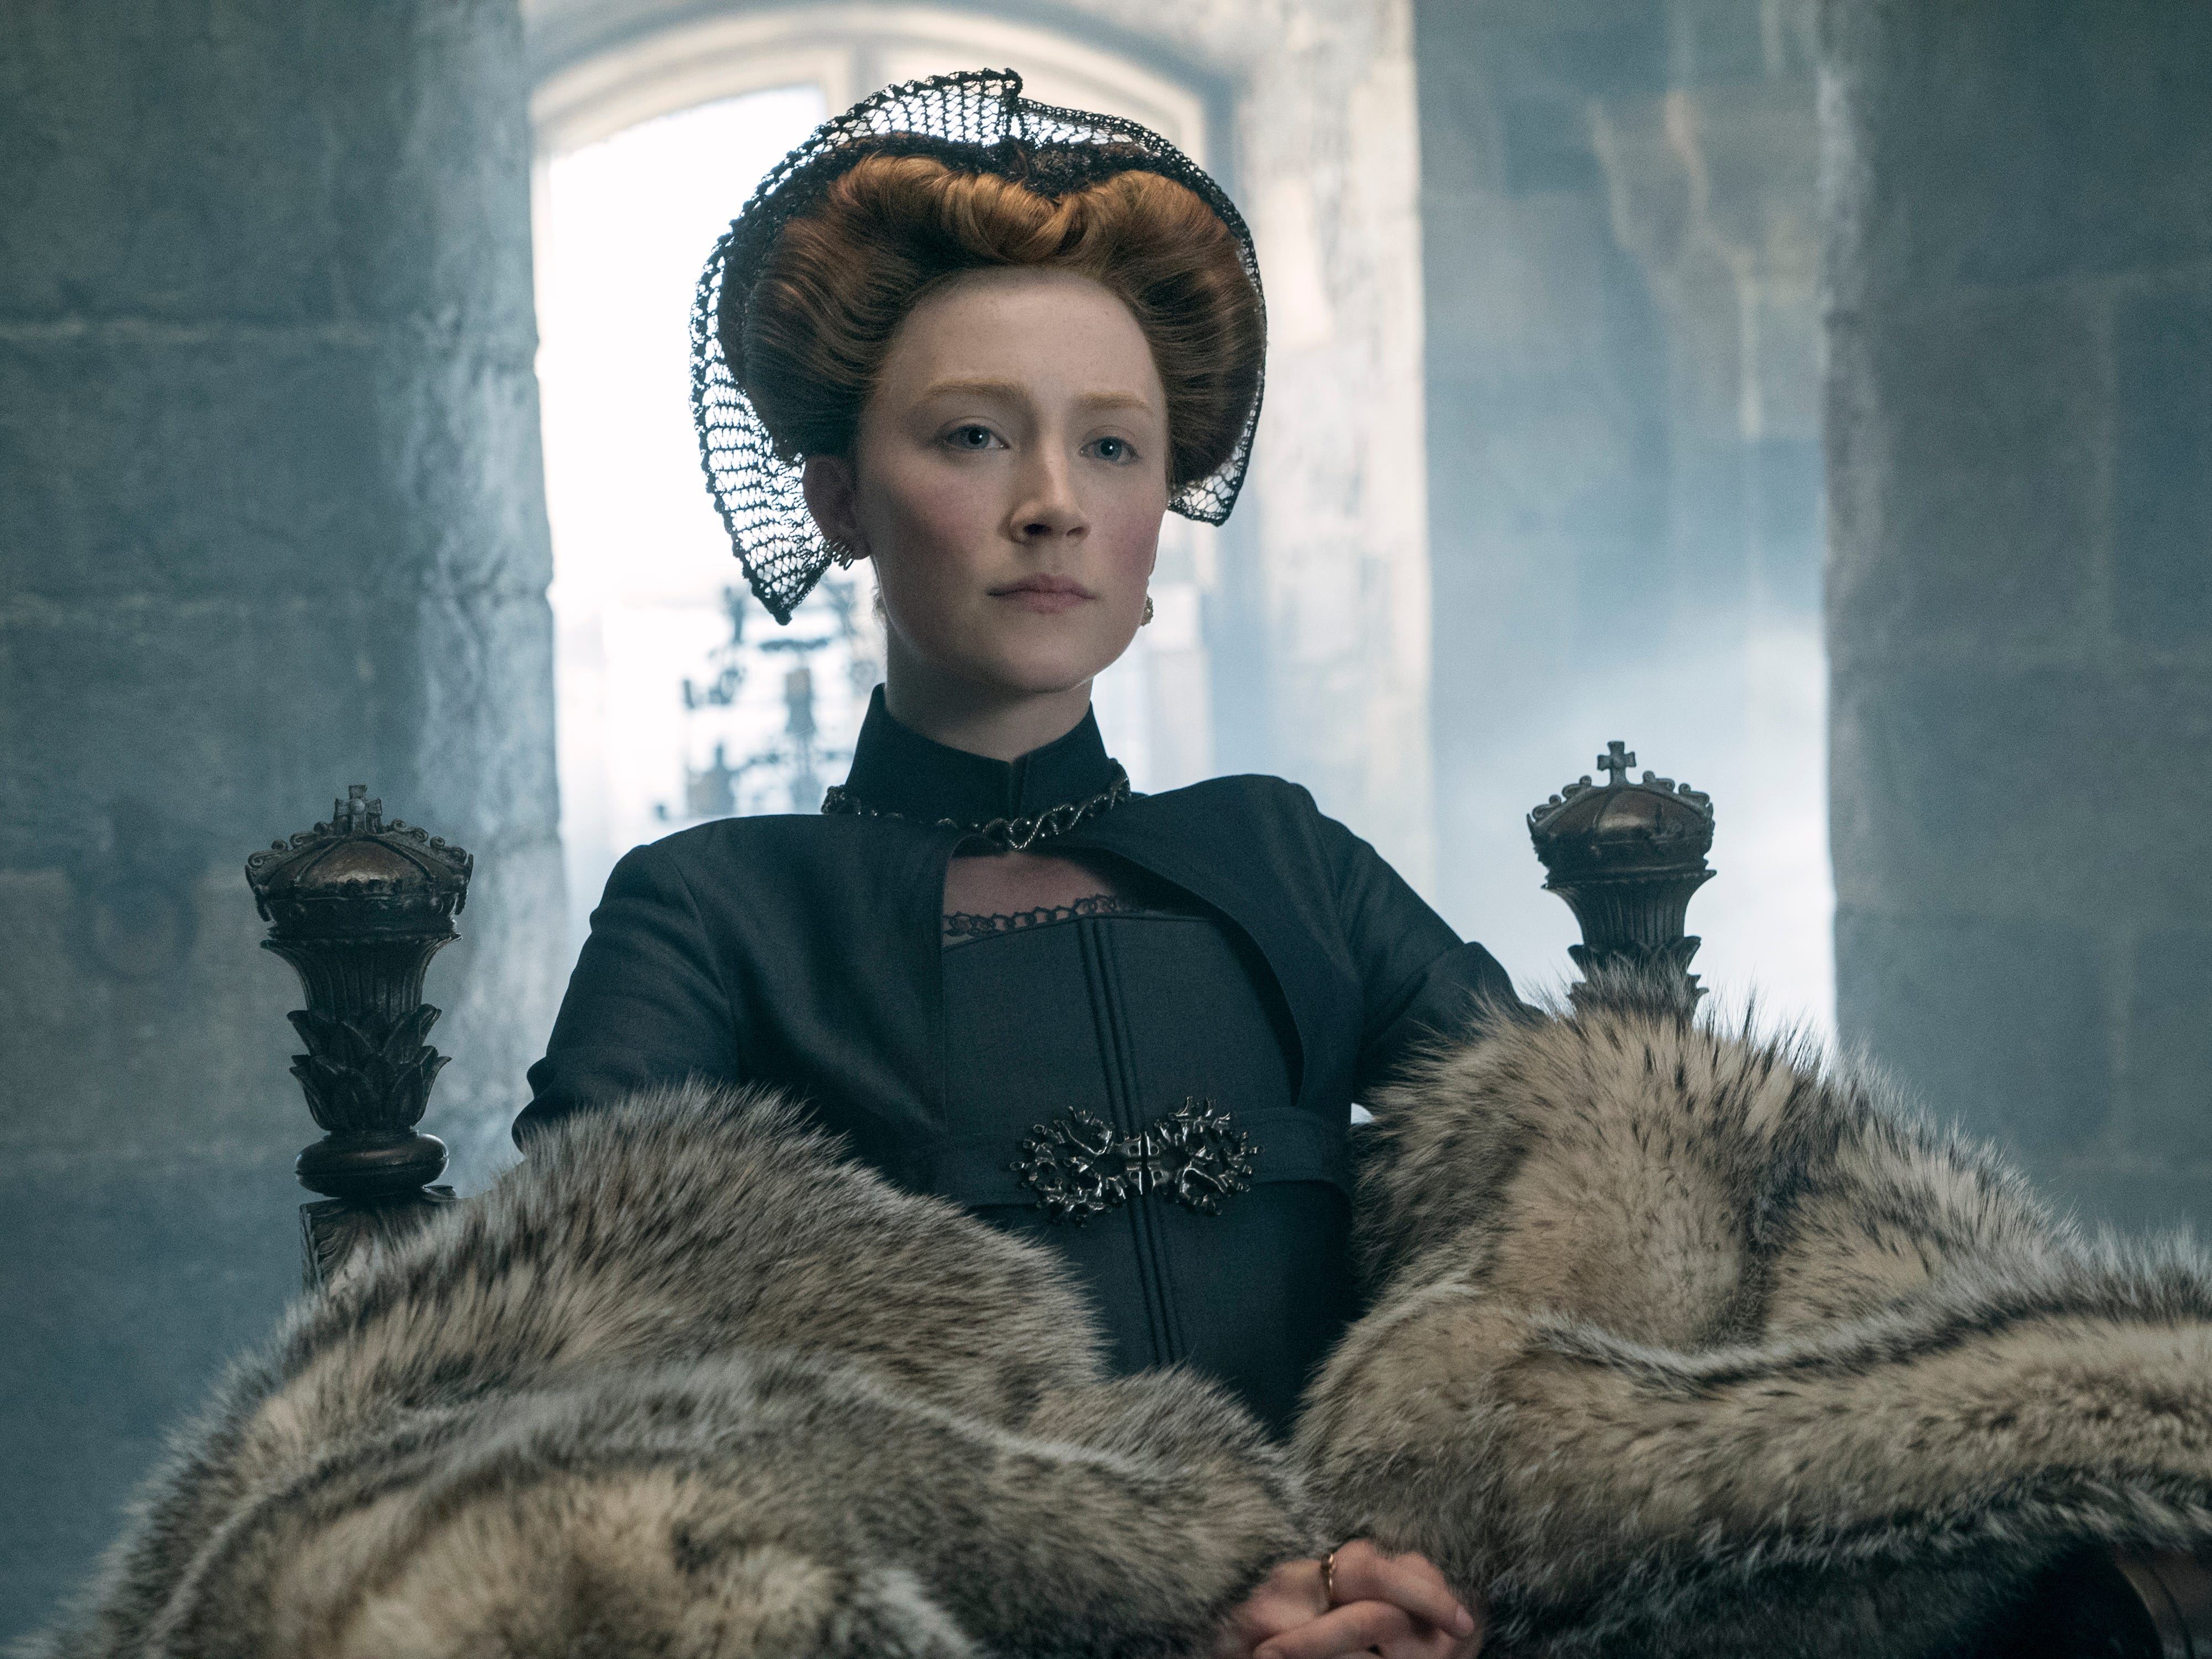 'Mary Queen of Scots' review: Margot Robbie, Saoirse Ronan go head-to-head